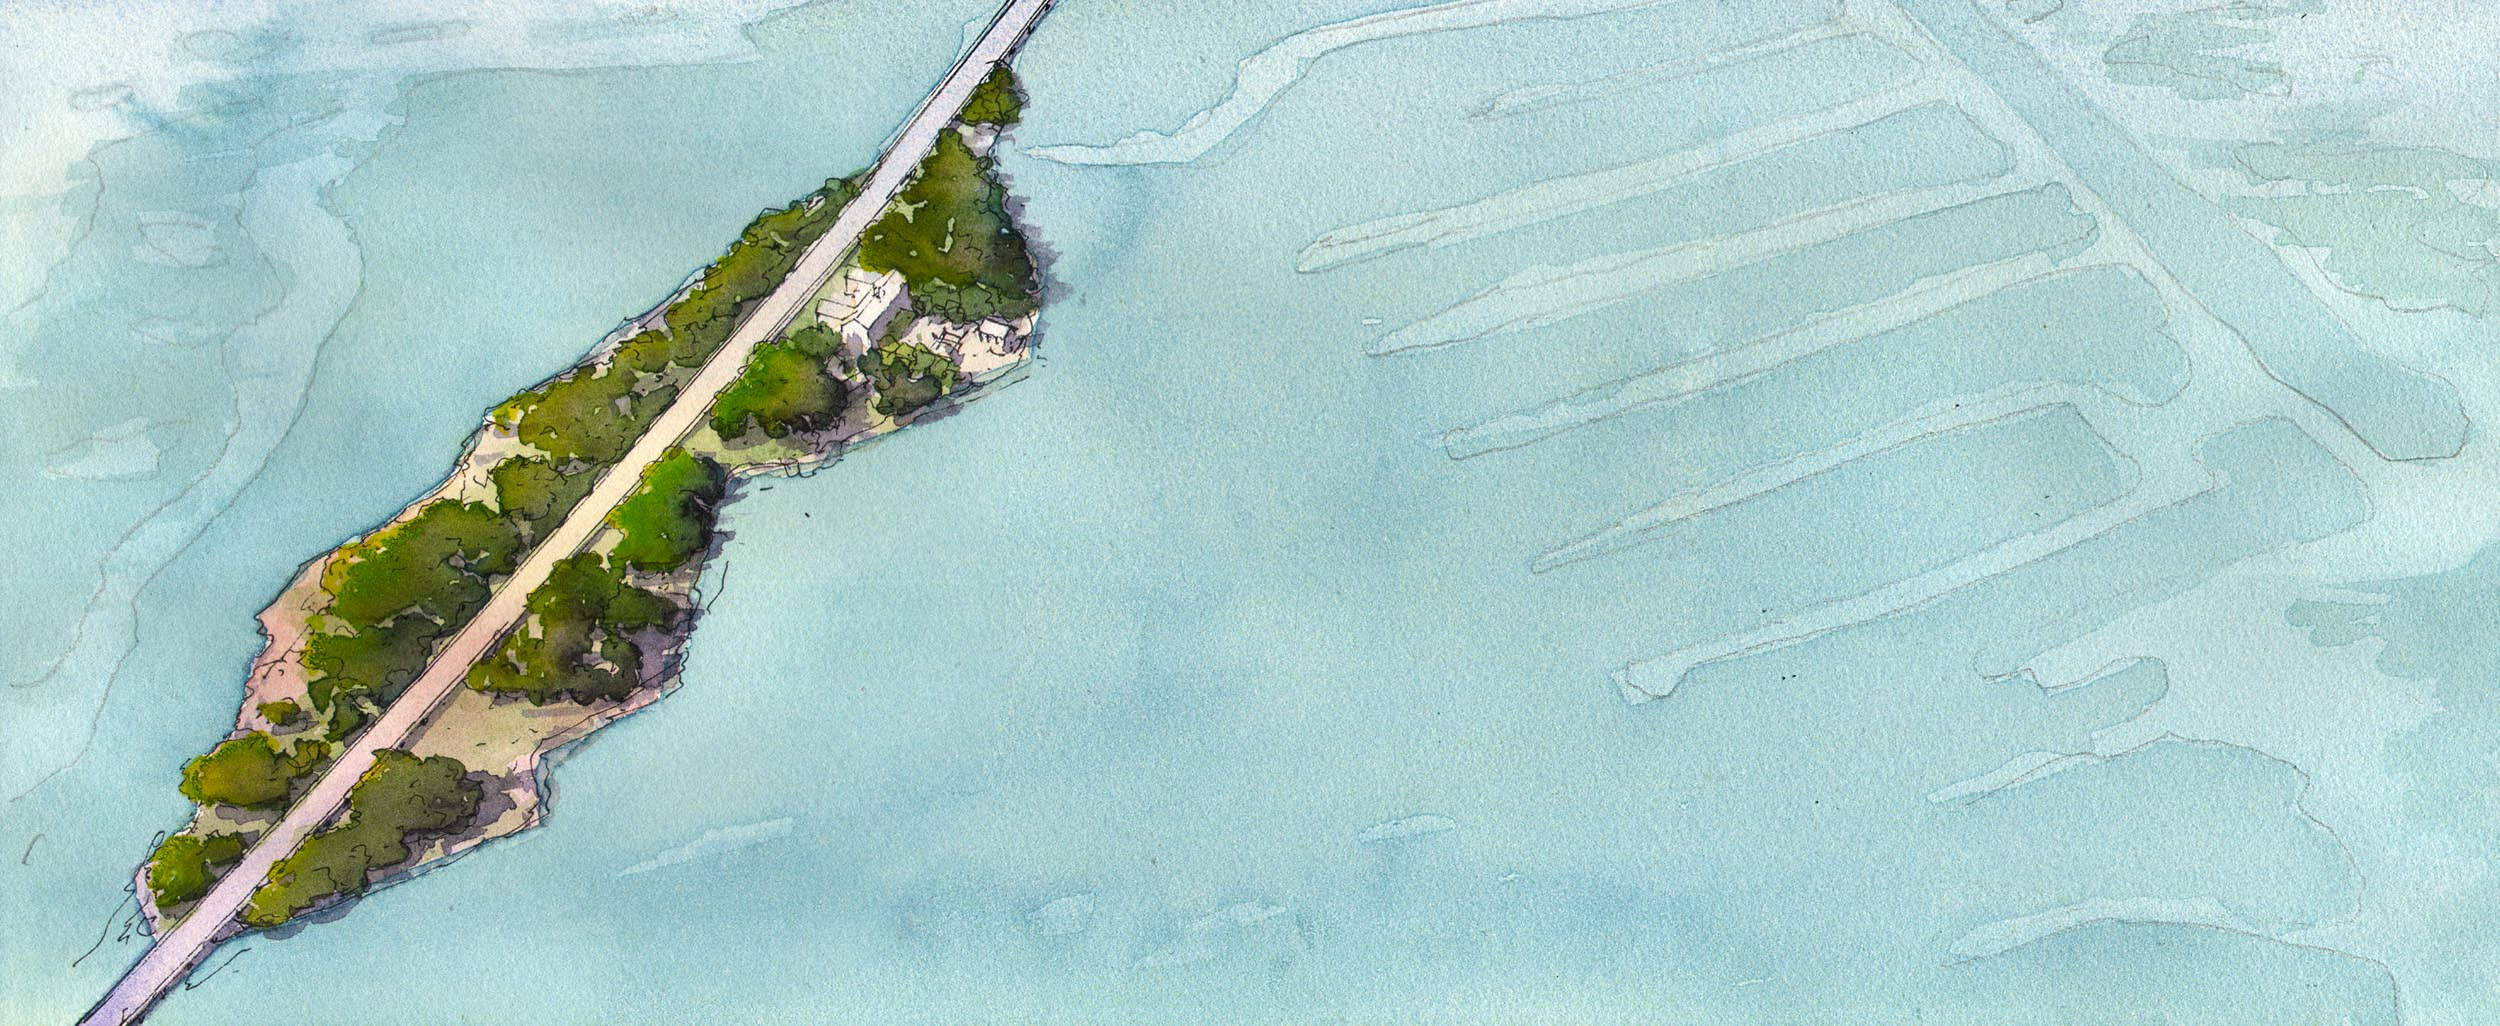 Florida Keys - 8 feet of Sea Level Rise